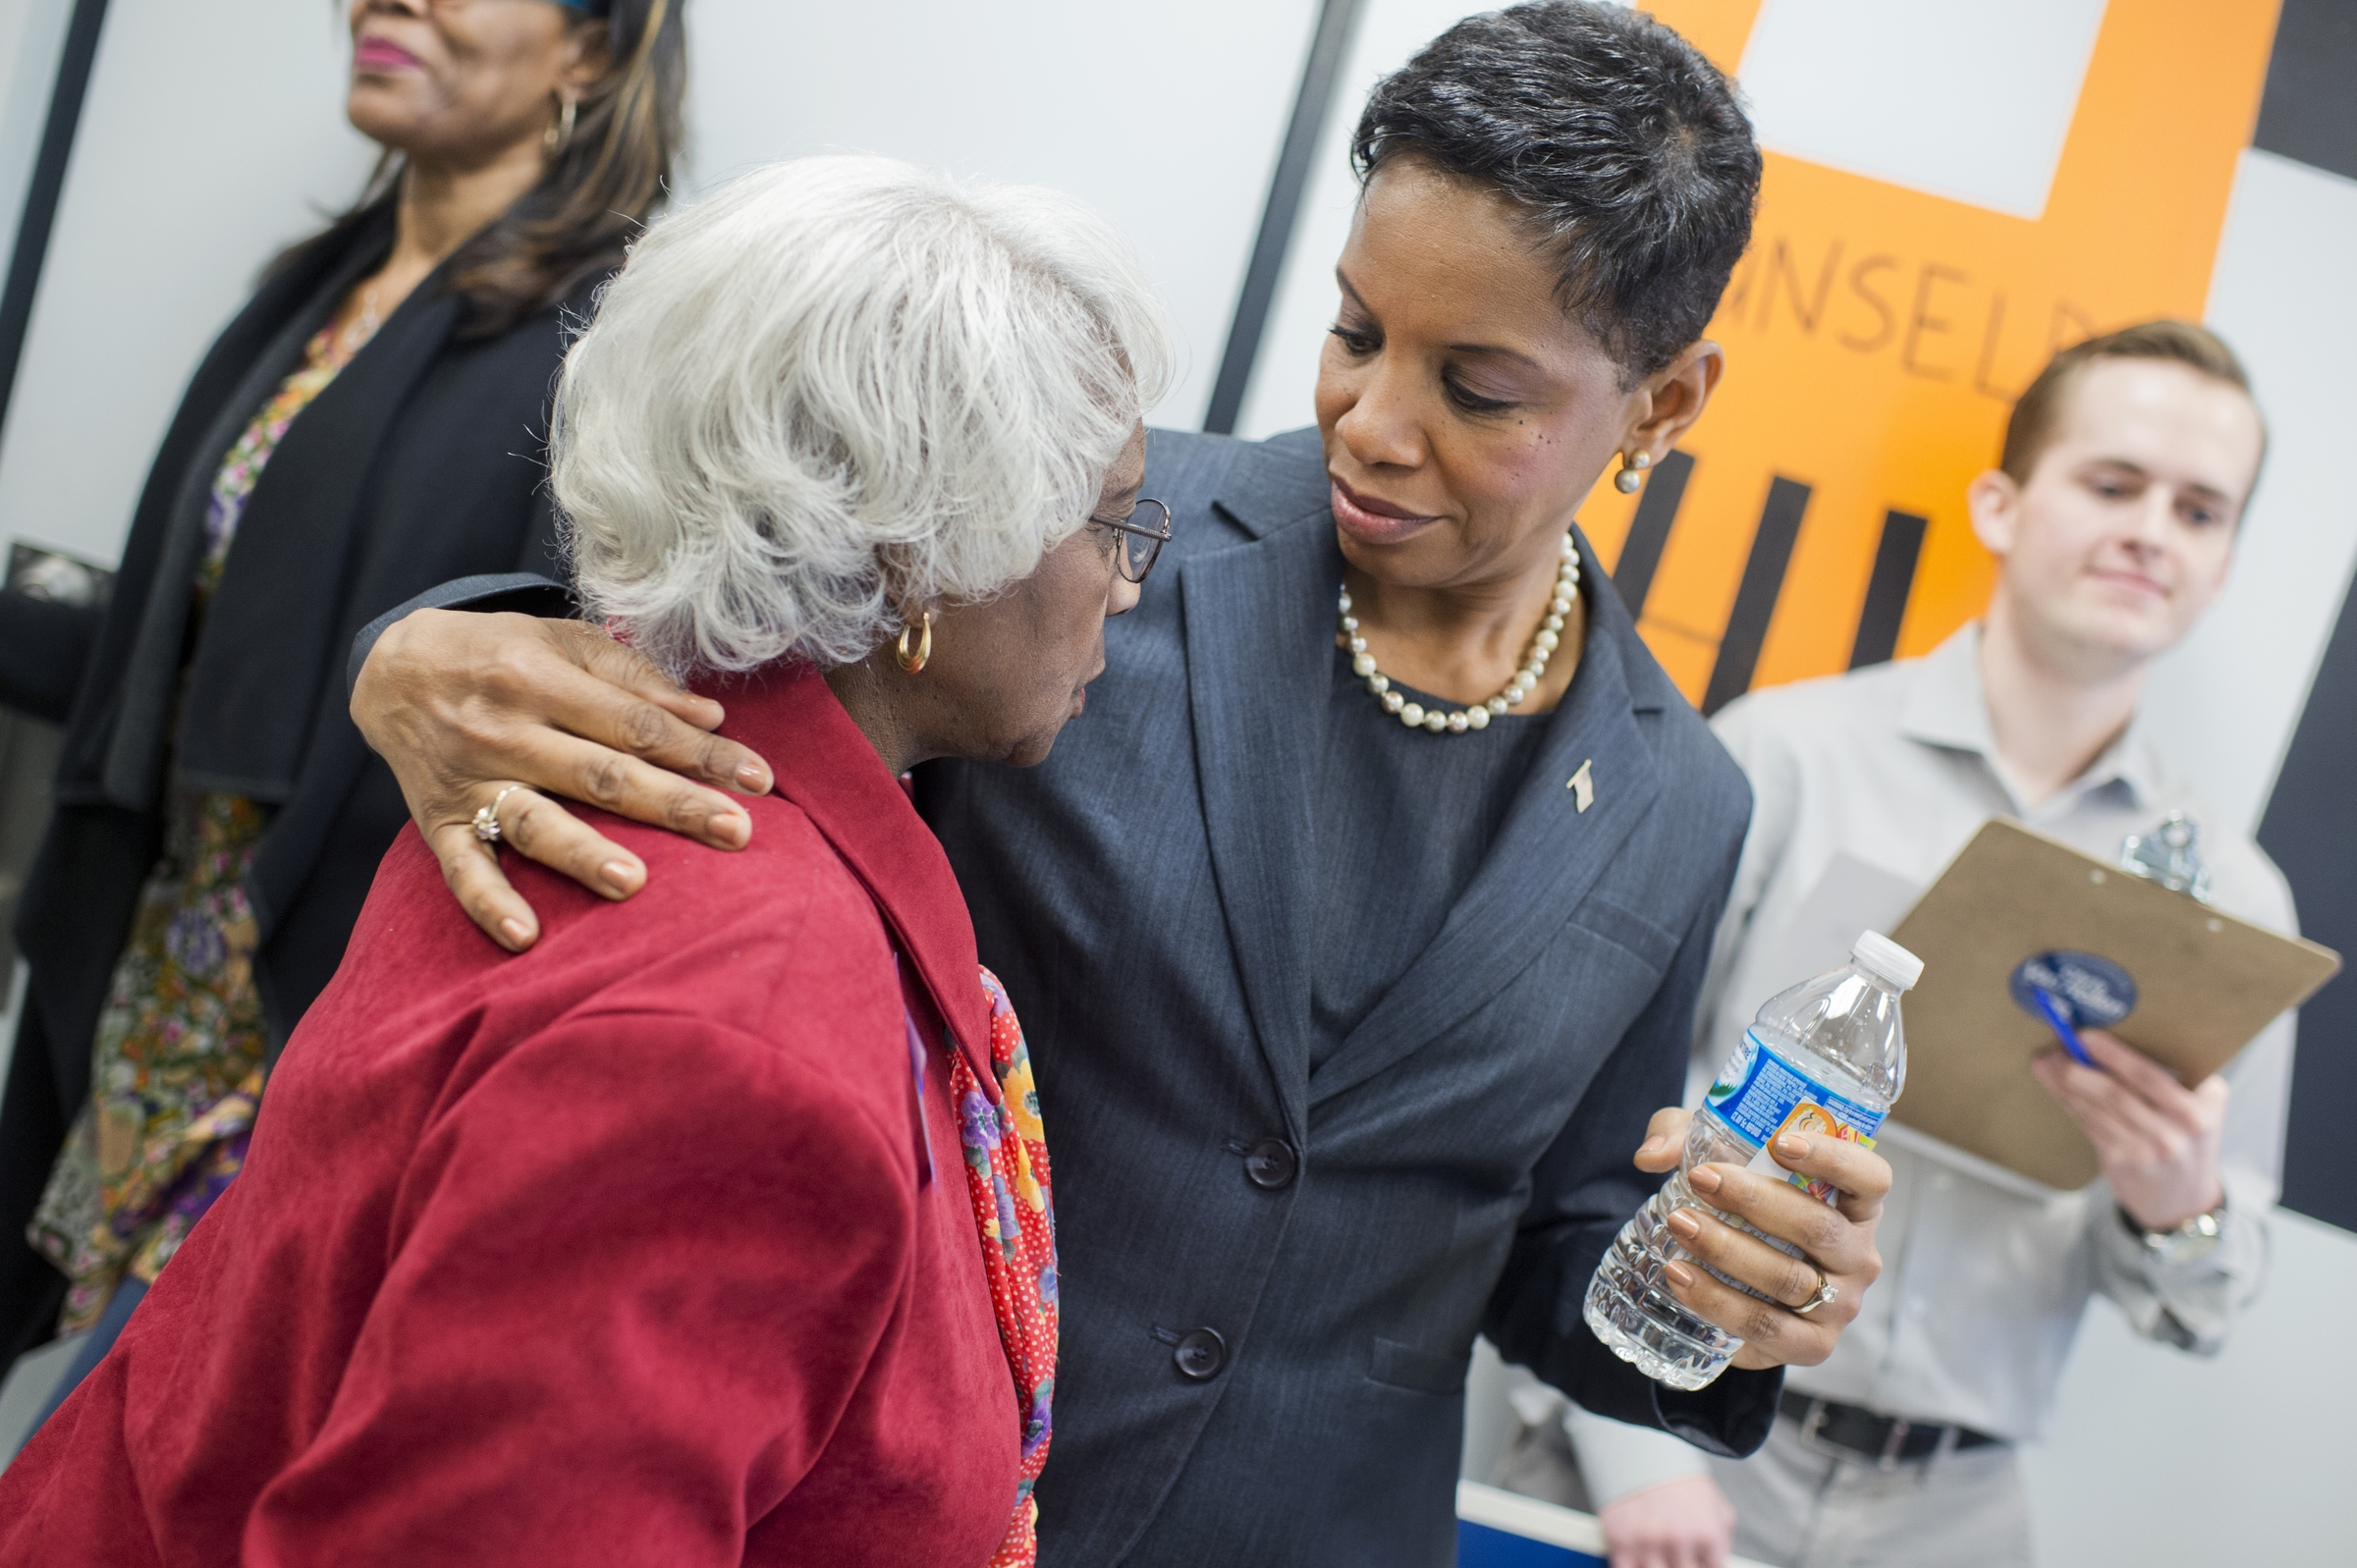 Donna Edwards greets an attendee after a candidate forum in Gwynn Oak, Md., on April 9. (Tom Williams/CQ Roll Call)